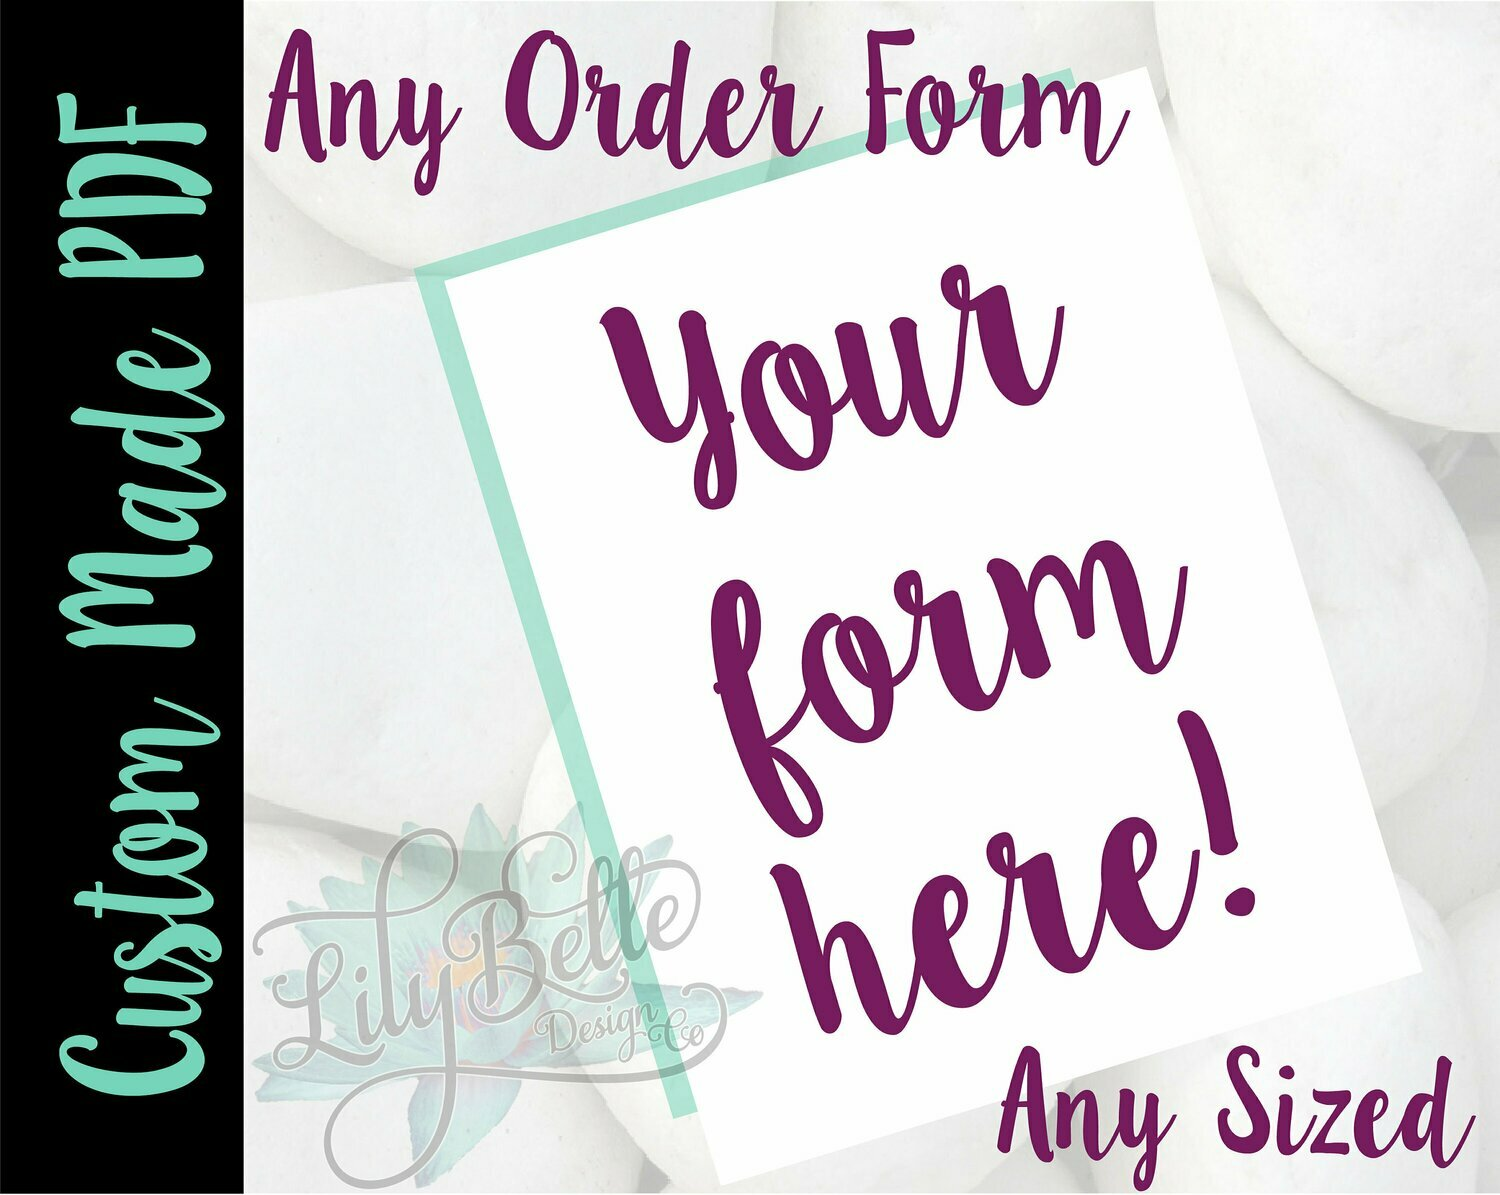 Custom Designed Order Form in PDF & JPG created for you with your Logo and Pricing!